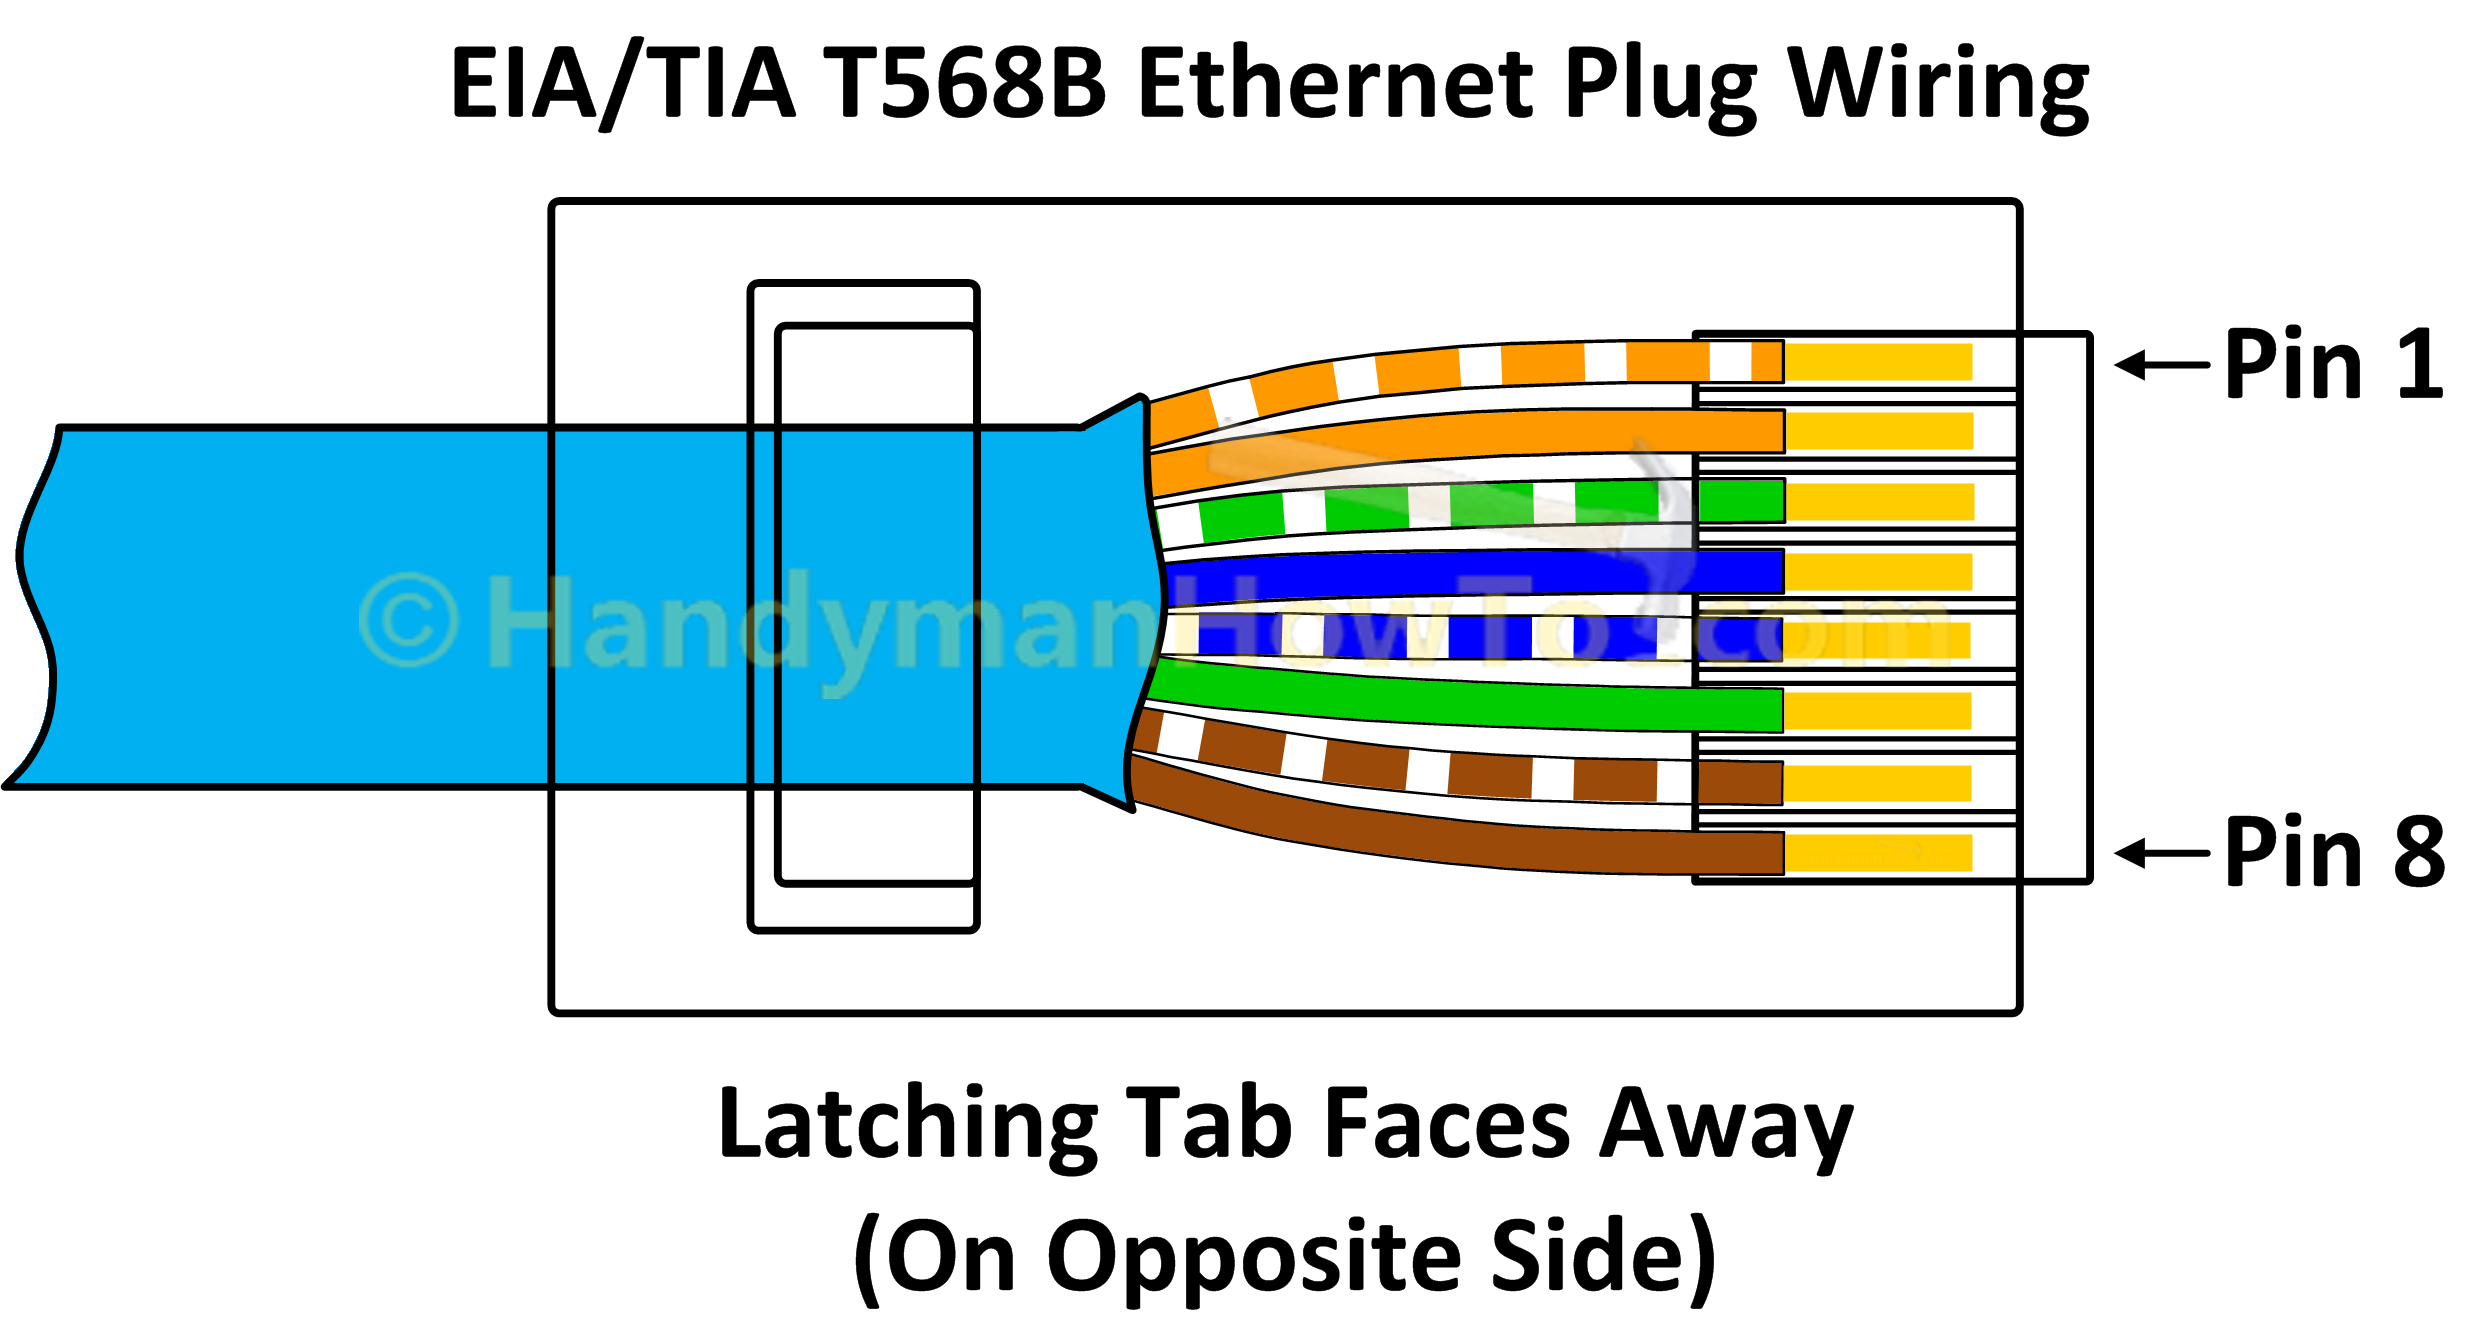 How to Make an Network Cable Cat5e Cat6